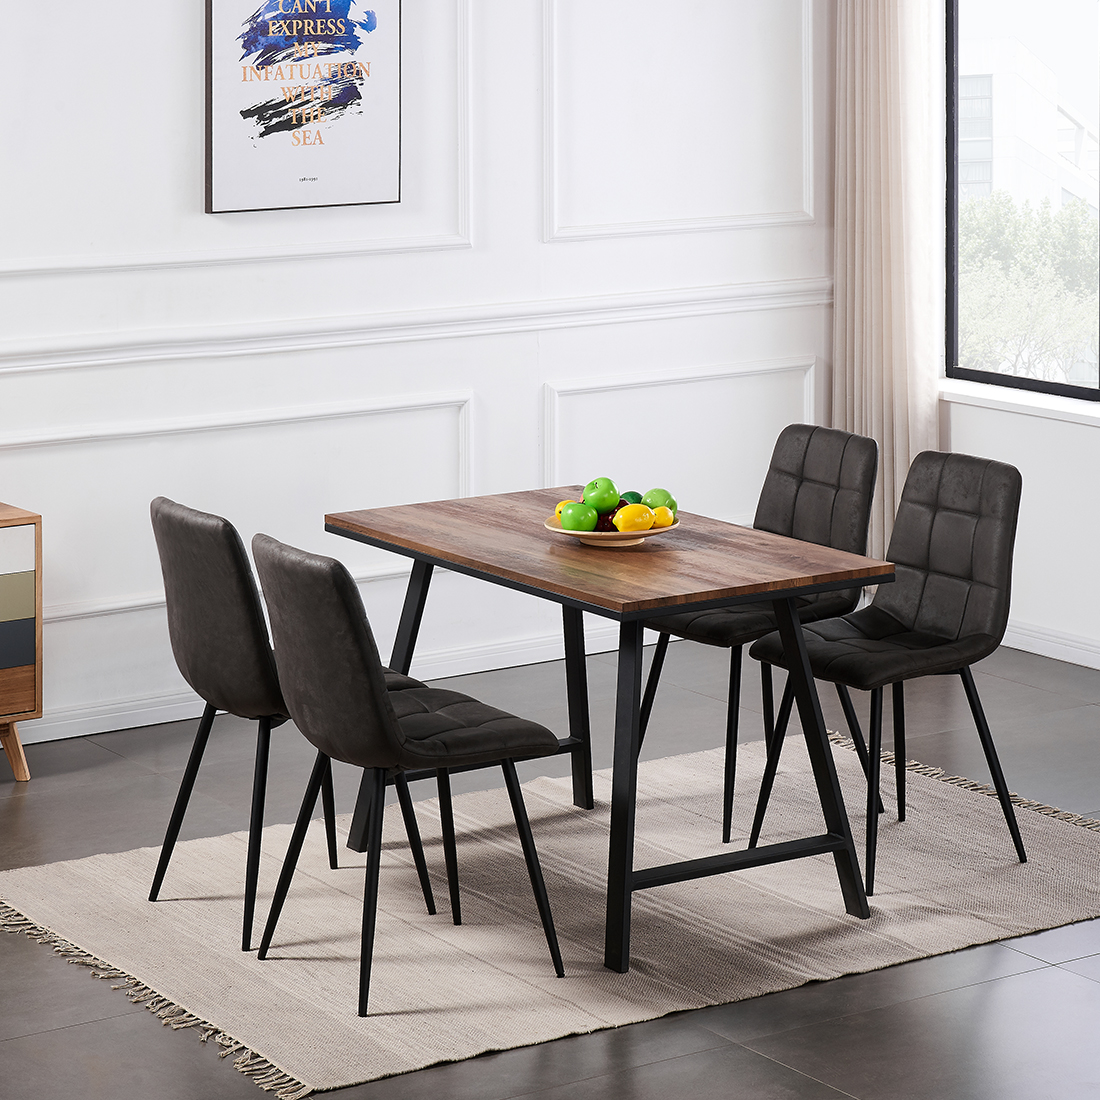 Small Dining Table And Chairs 4 Set Black Metal Leg Dining Room Chair Kitchen Uk Ebay